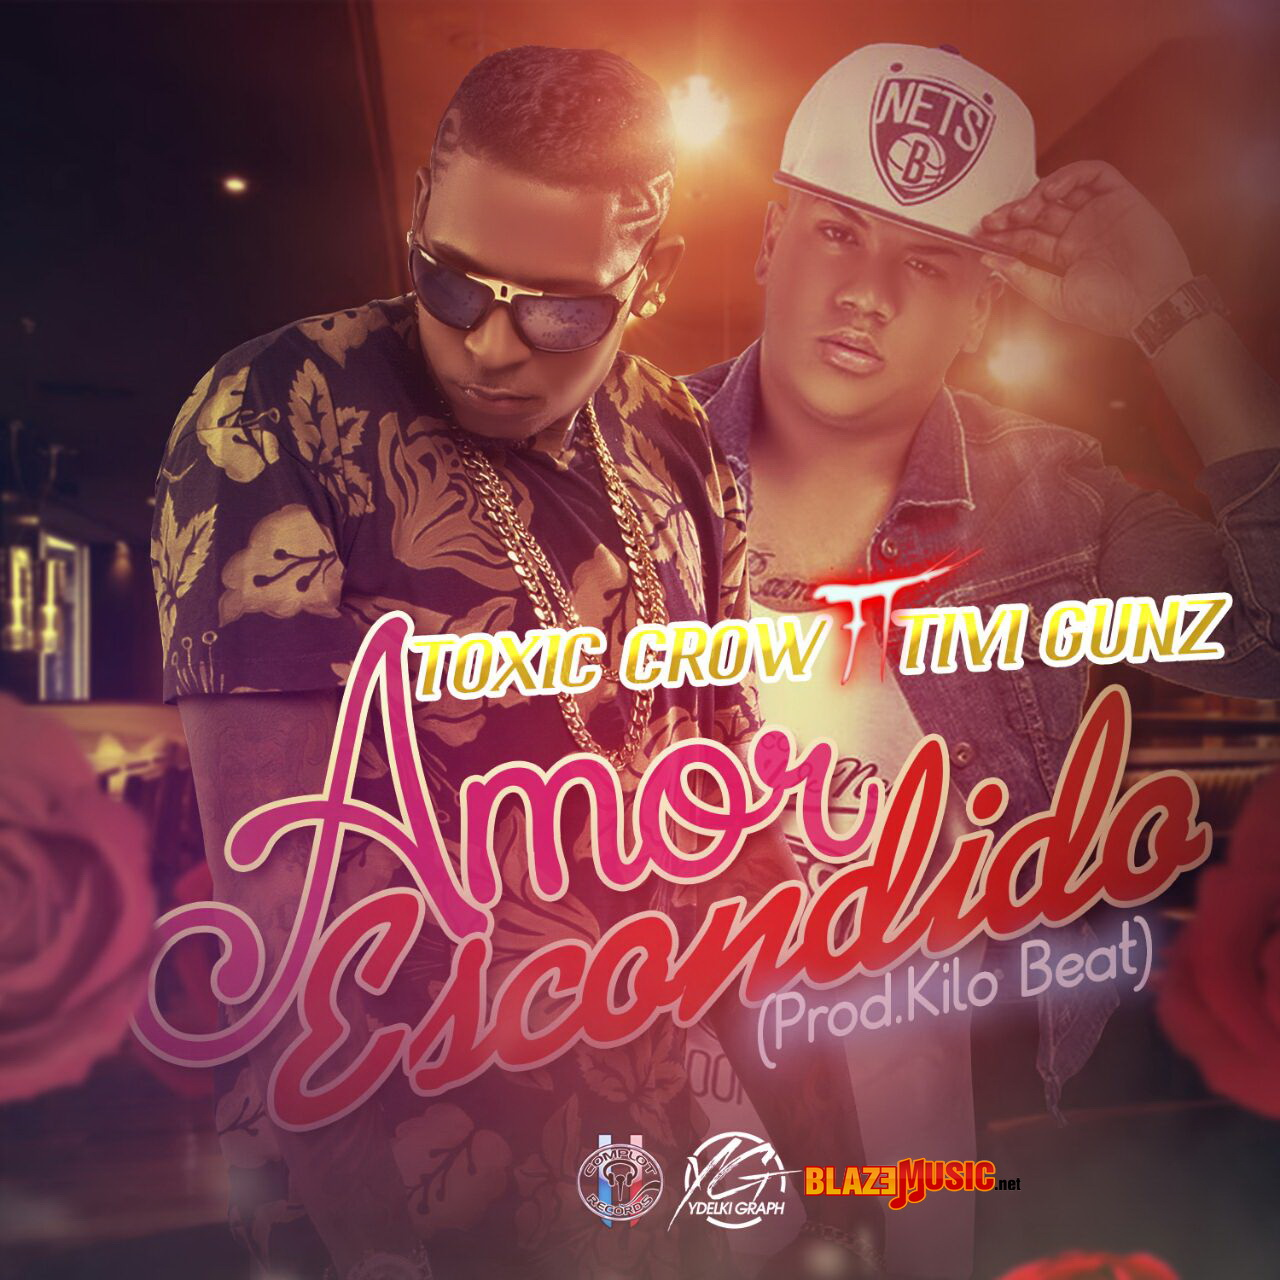 Tivi Gunz ft Toxic Crow - Amor Escondido (Prod By Kilo Beats)